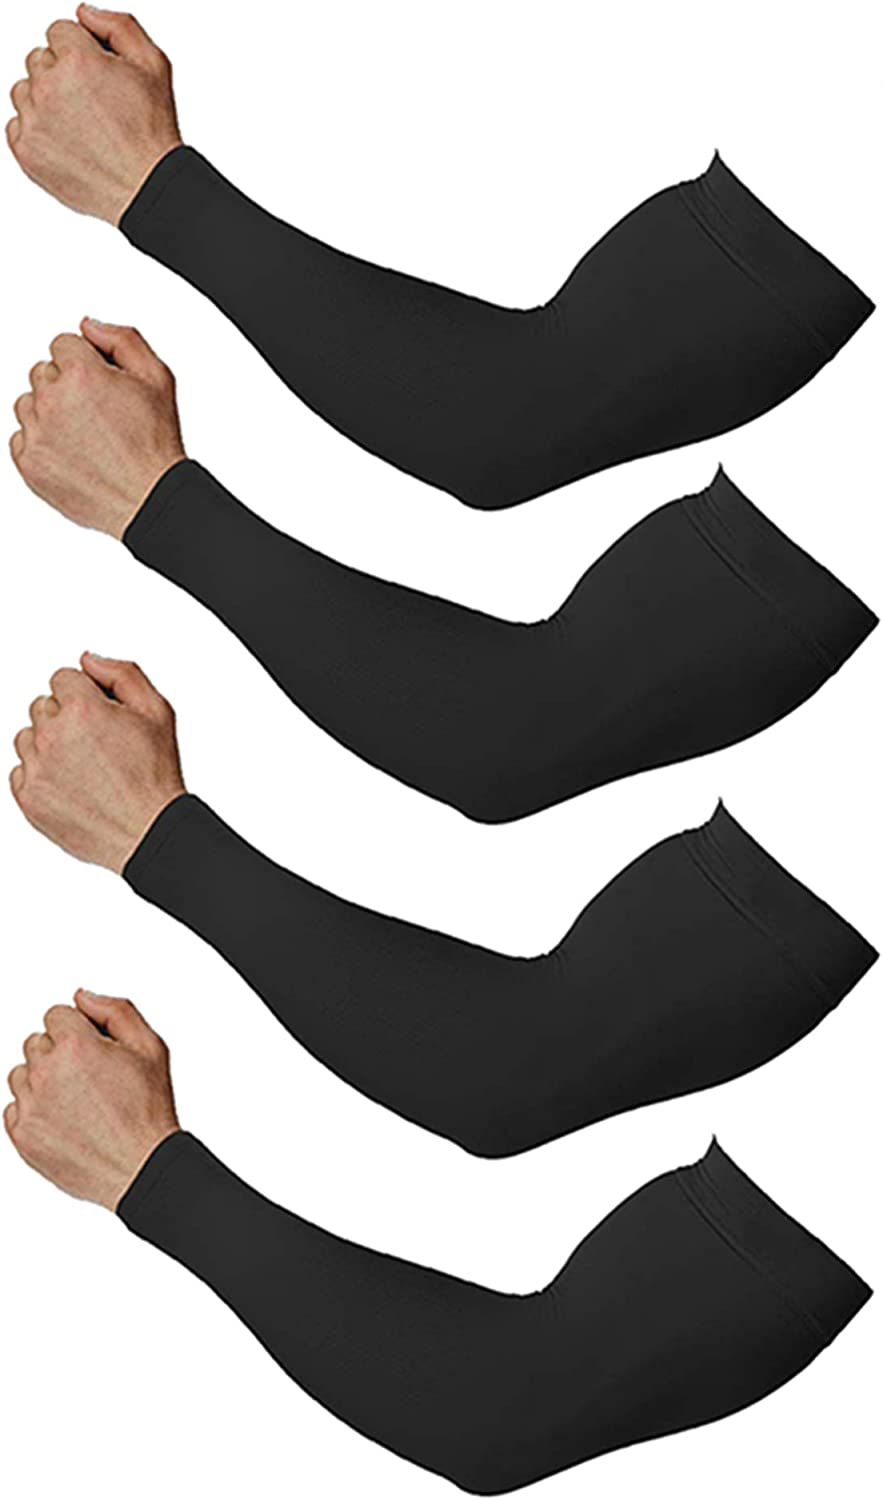 Arm Sleeves for Men and Women, UV Protection Cooling Arm Sleeves, 4-Pairs Anti-Slip Compression Sun Sleeves